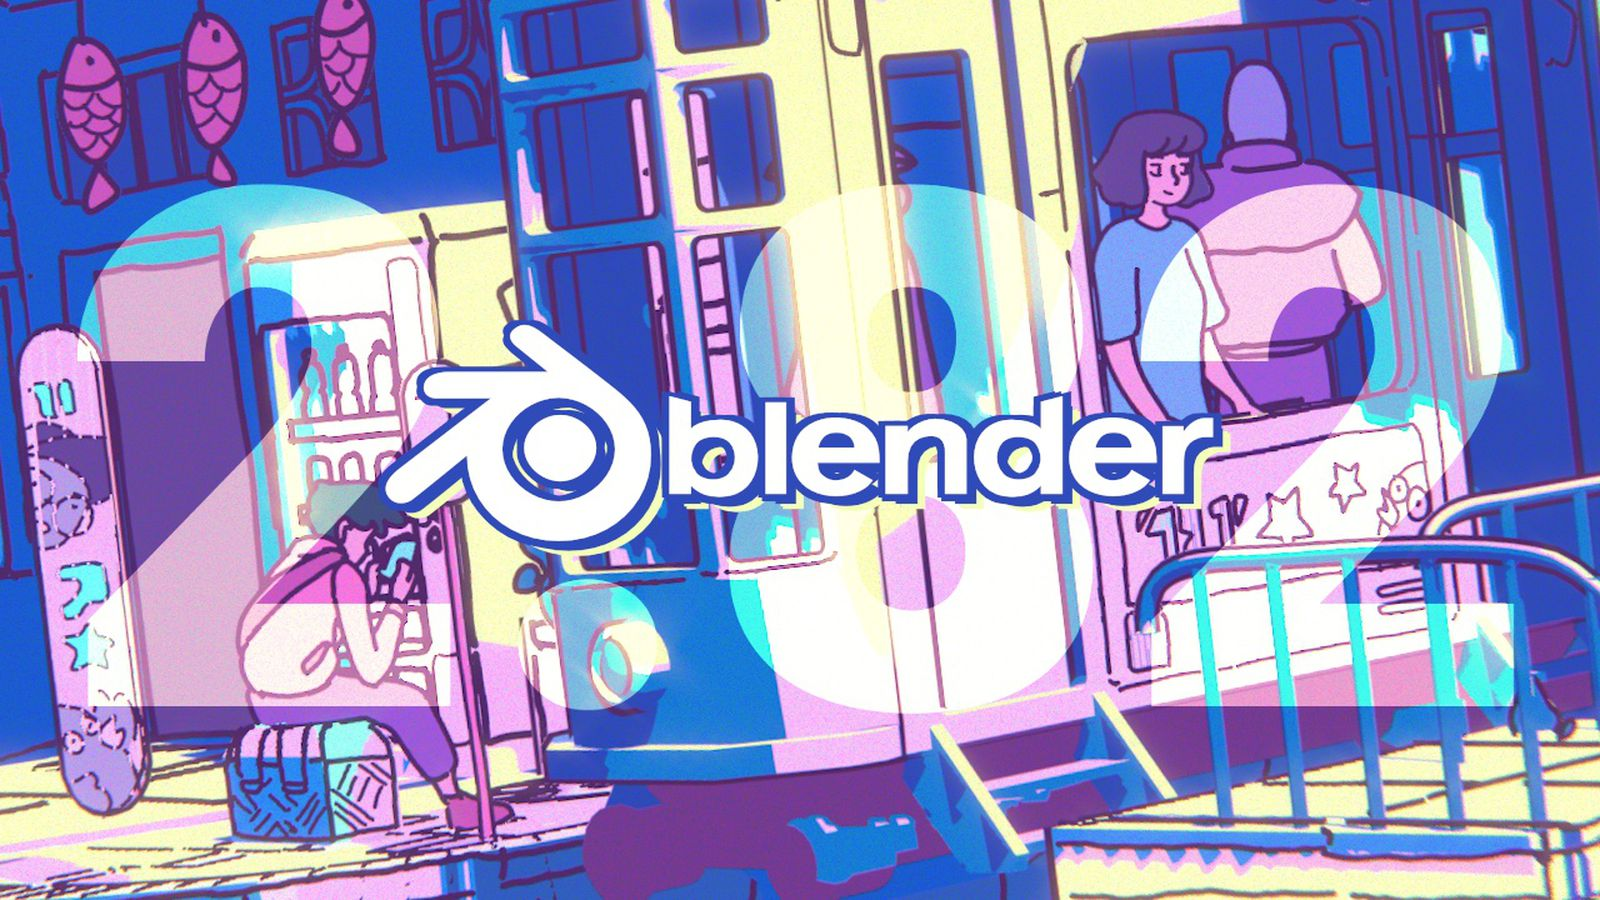 Apple Joins Blender's Development Fund to Support 3D Graphics Tool